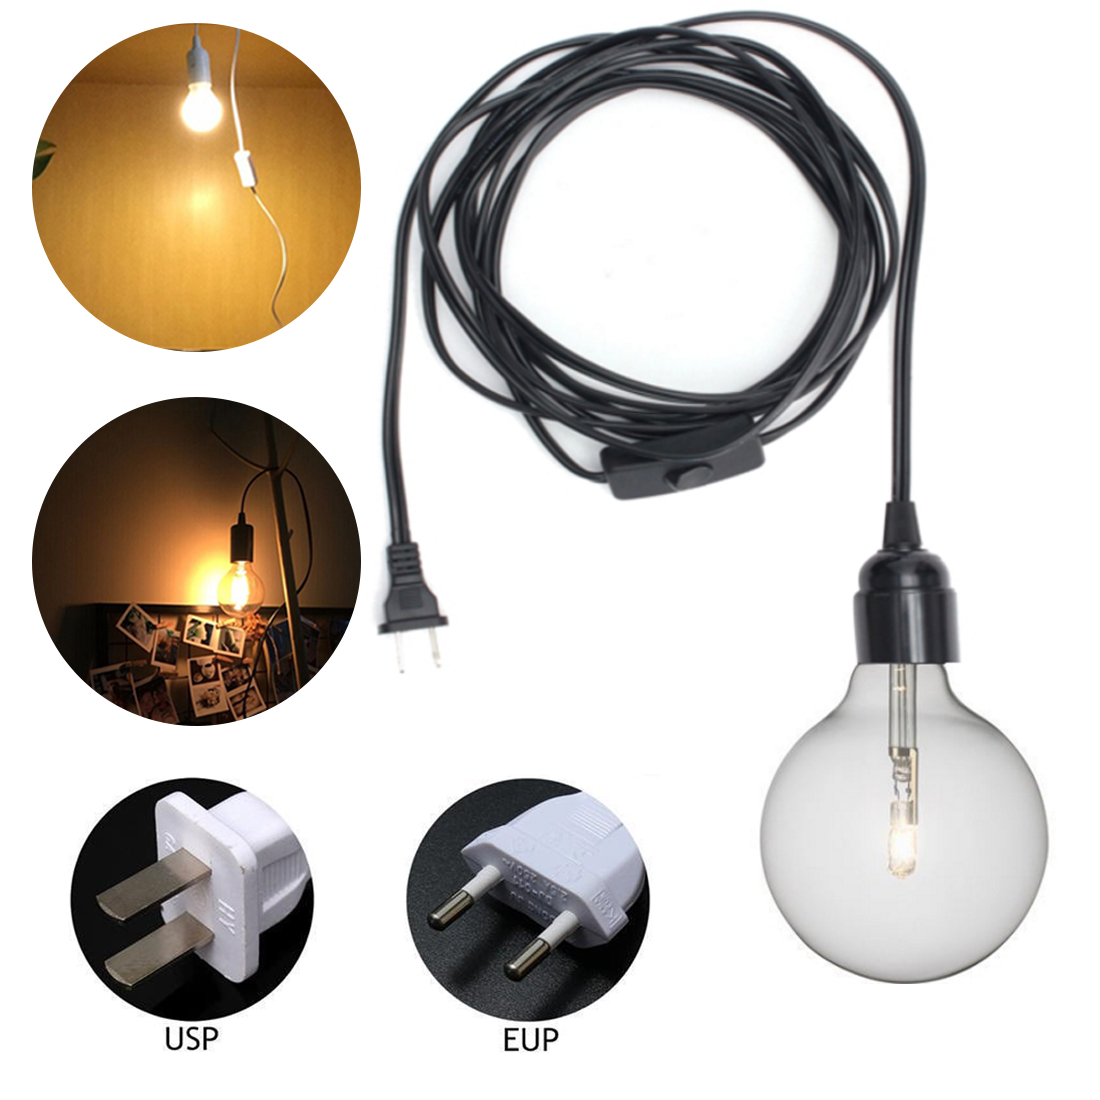 1.5m Power Cord Cable E27 Lamp Bases EU/US Plug With Switch Wire For Pendant LED Bulb E27 Hang Lamp Suspension Socket Holder